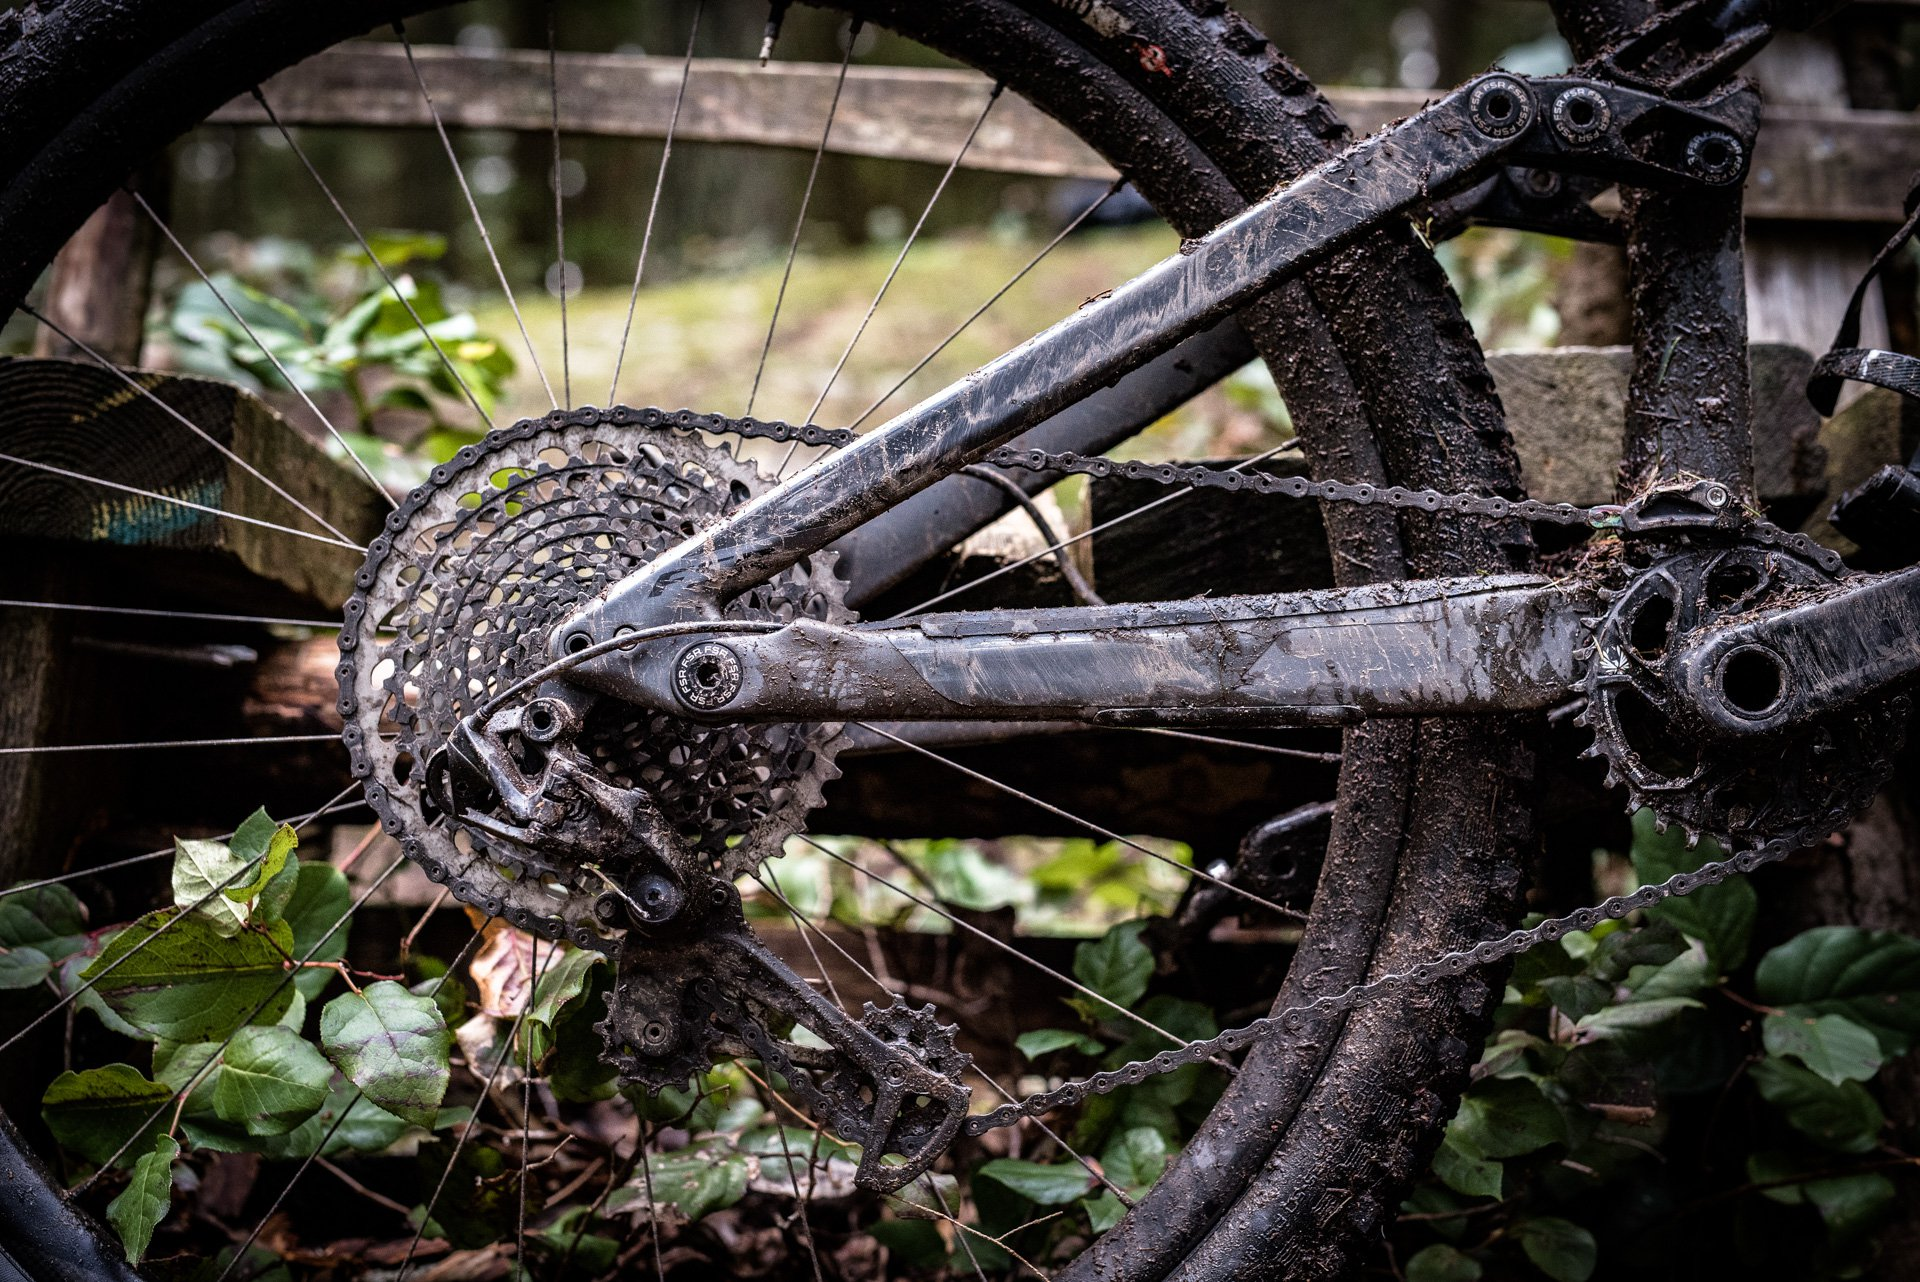 nsmb_2017_geareview_specialized_enduro29_PerrySchebel-7883.jpg